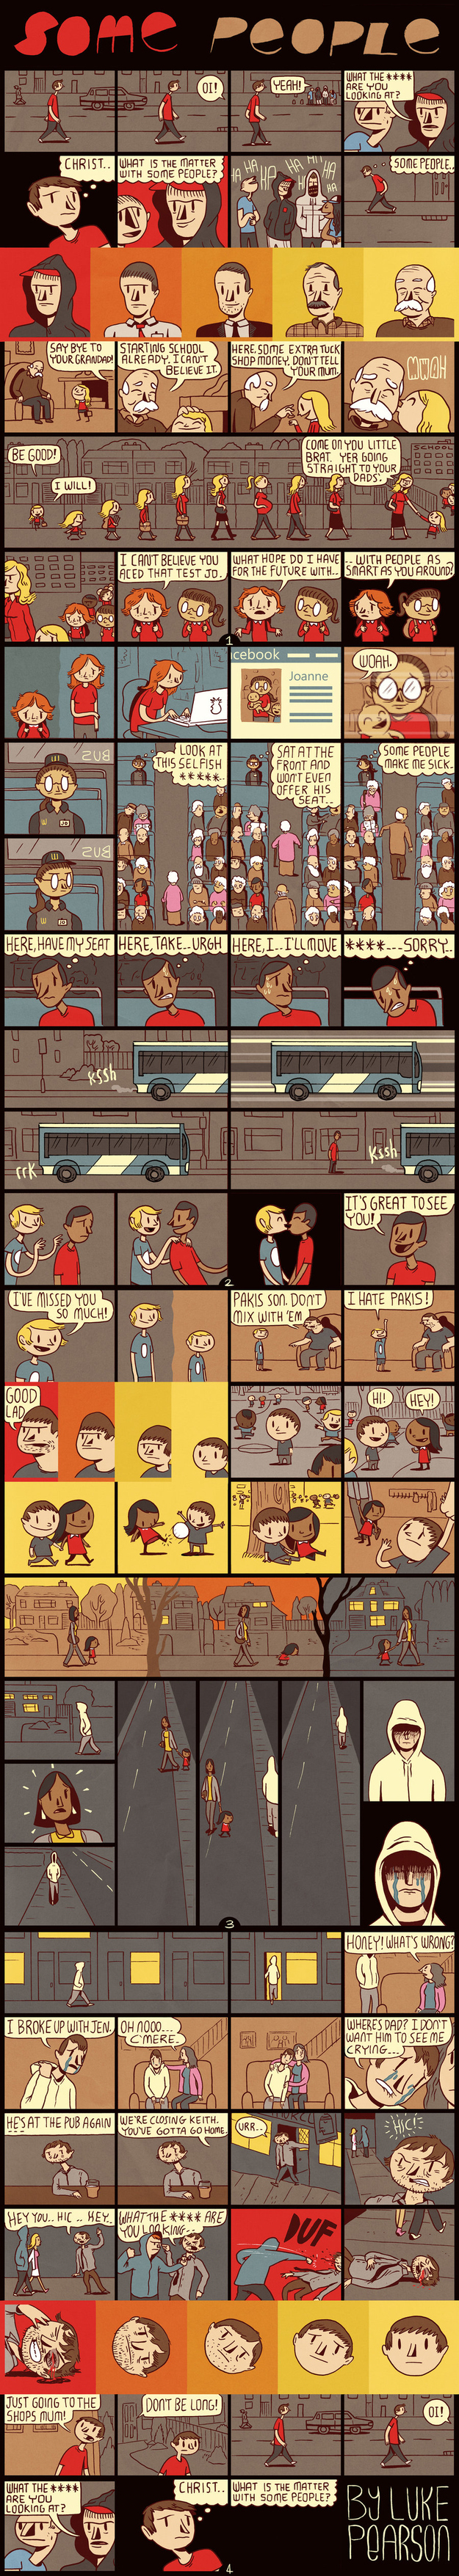 """Some People"" by Luke Pearson is another example of amazing comic structure"